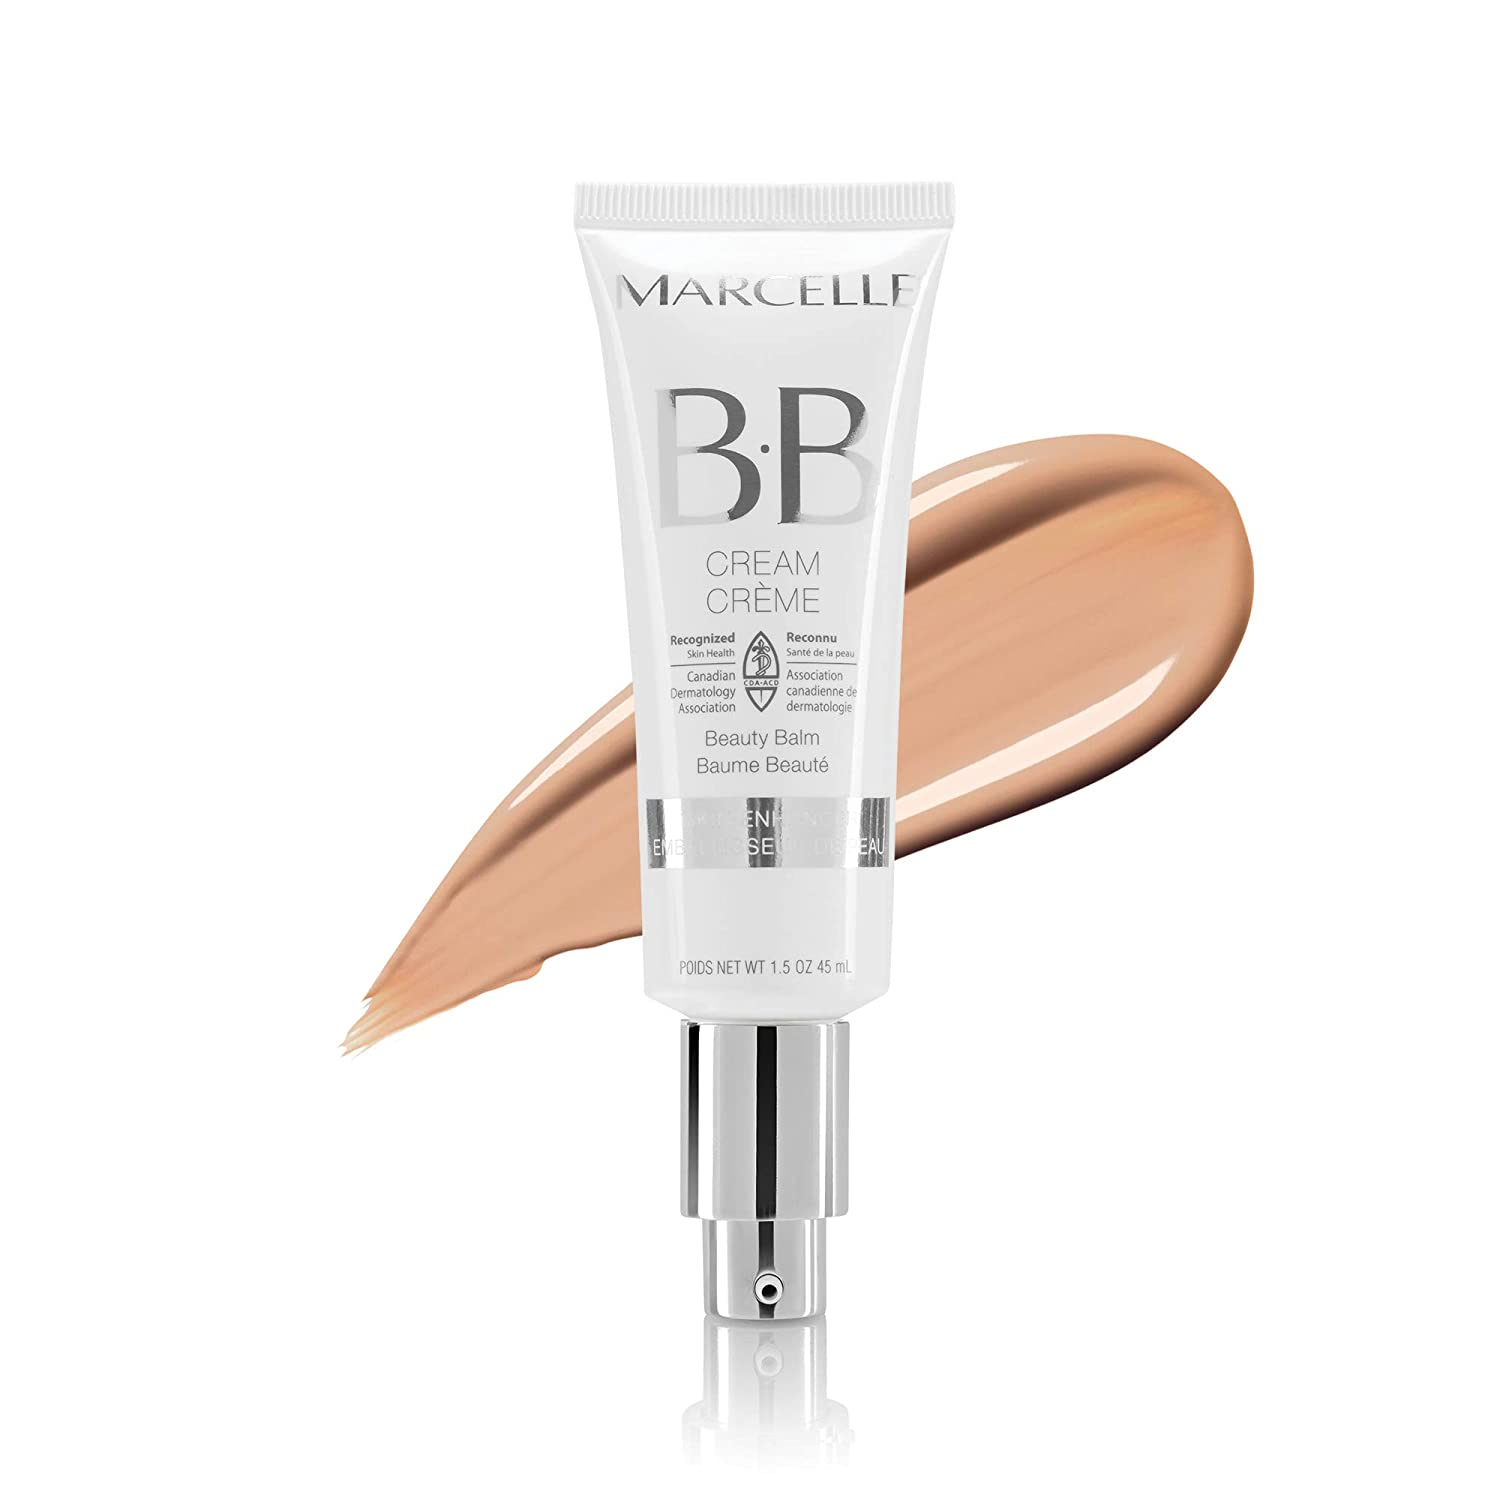 Marcelle BB Cream Beauty Balm, Light to Medium, Hypoallergenic and Fragrance-Free, 45 mL